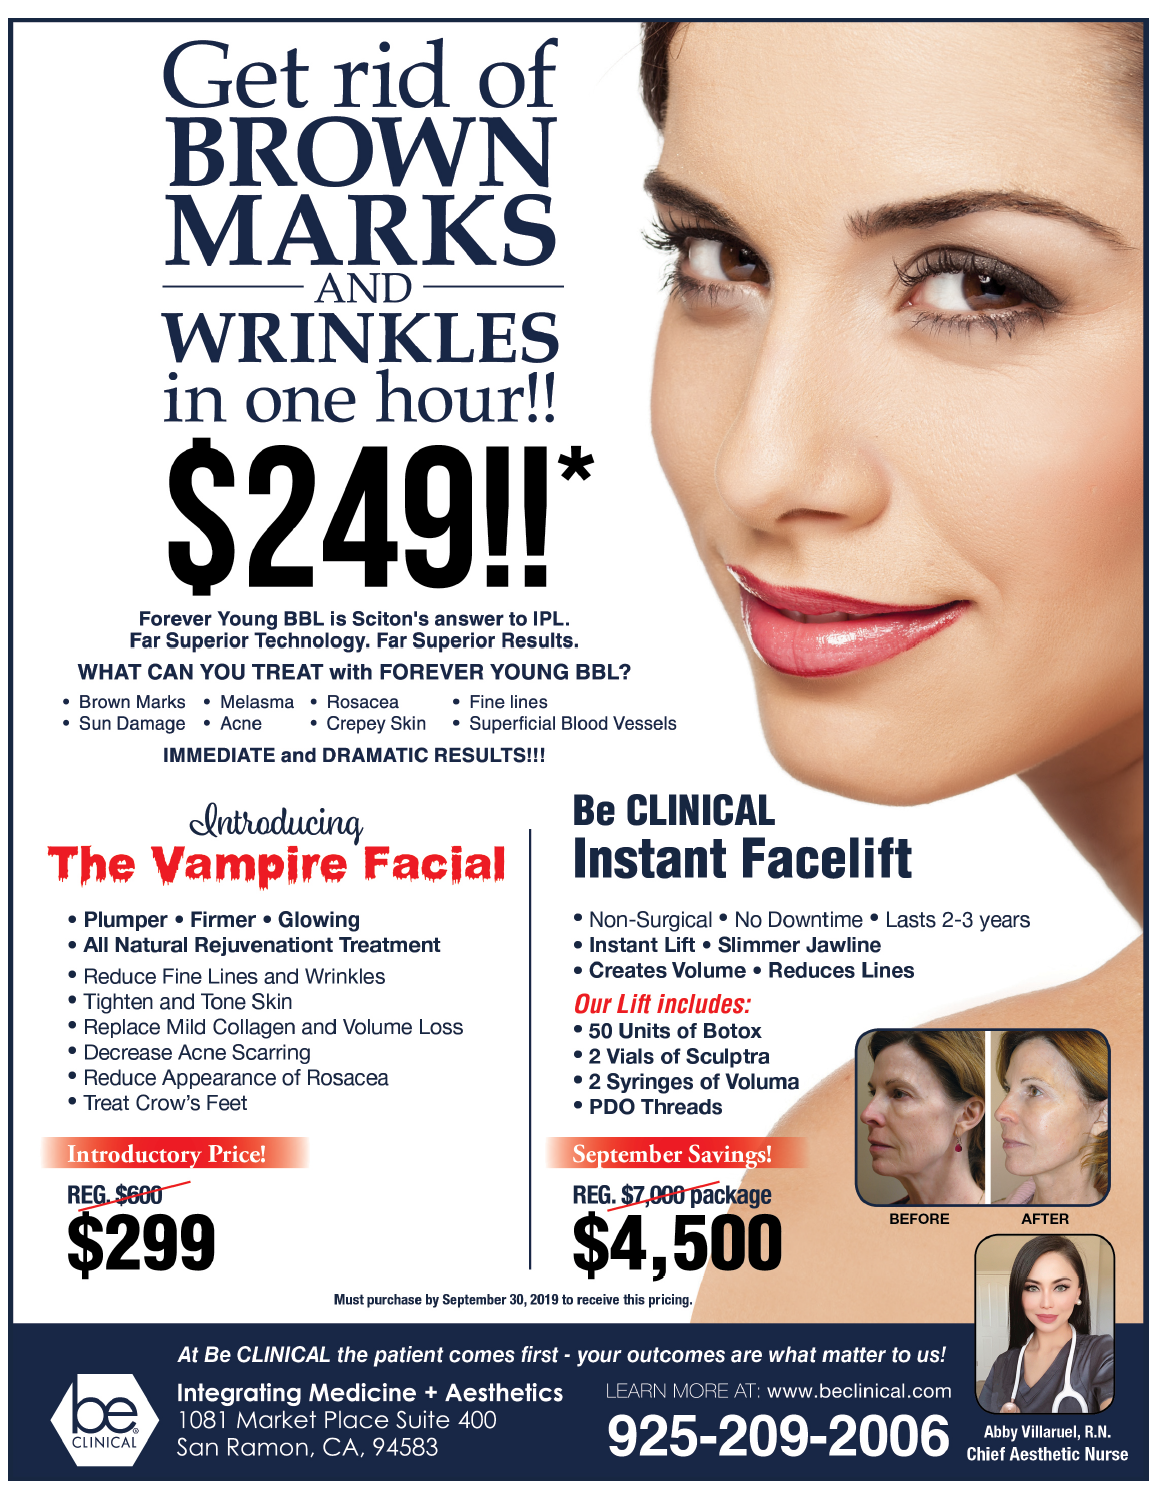 Brown Marks_BeCLINICAL_Sept_Special